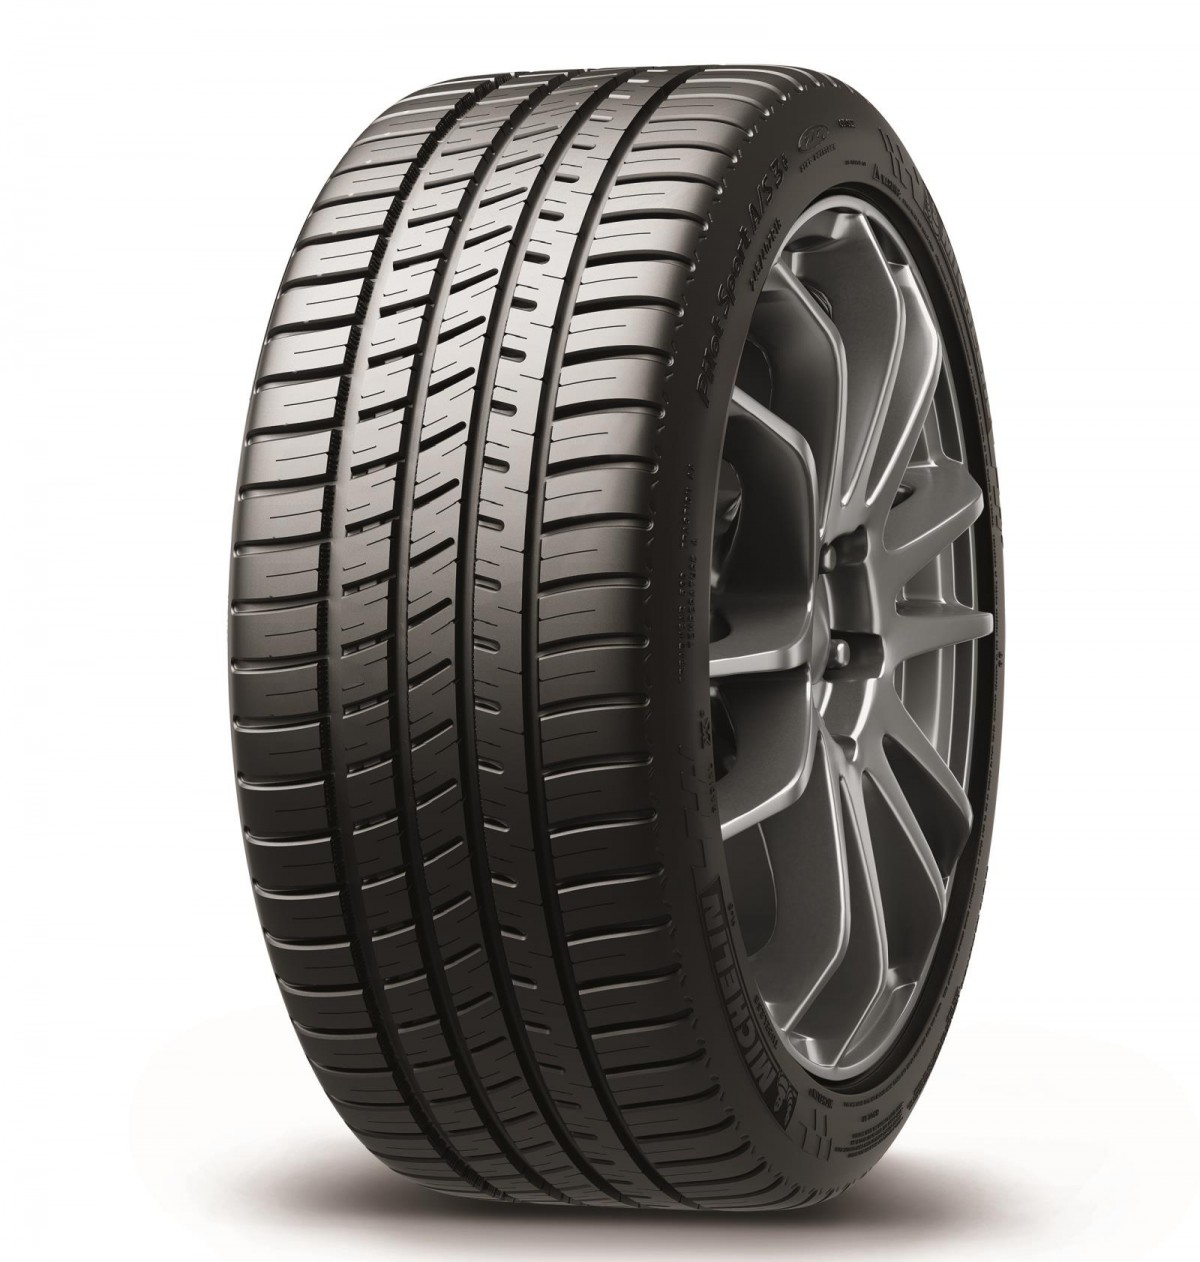 michelin introduces new tire influenced by racing traction news. Black Bedroom Furniture Sets. Home Design Ideas